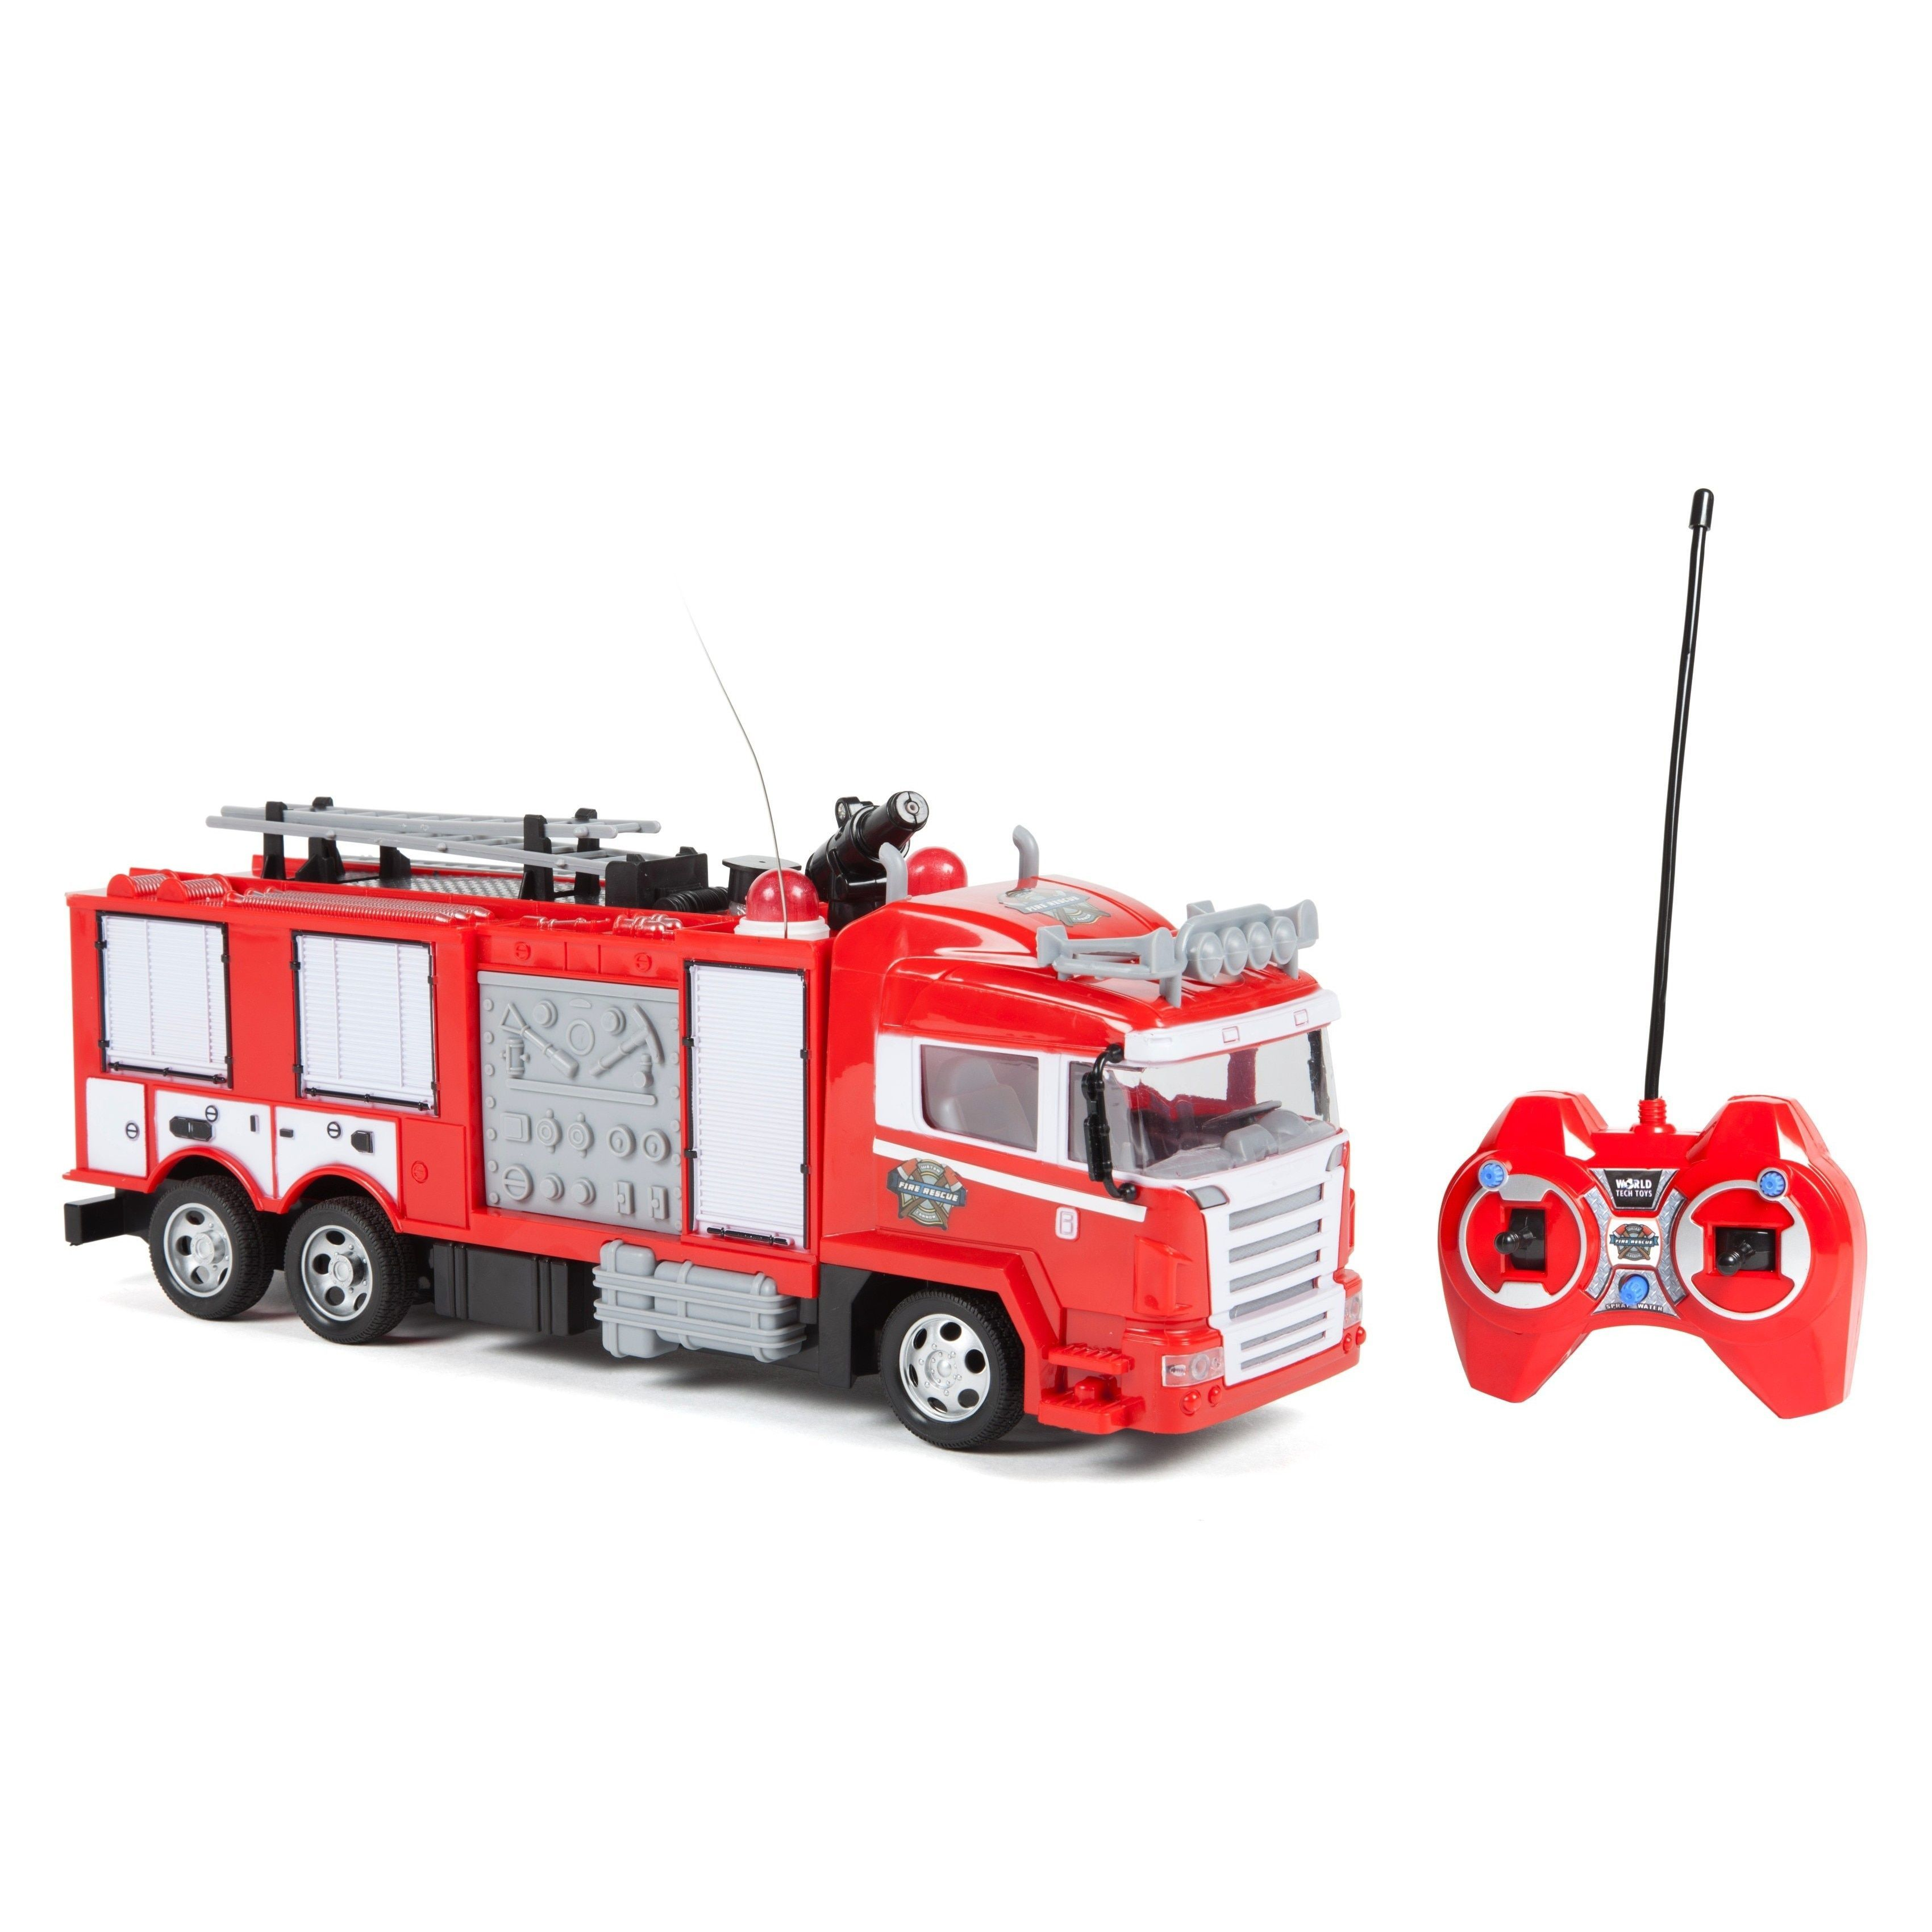 World Tech Toys Boys and Girls Fire Rescue Water Cannon RC Fire